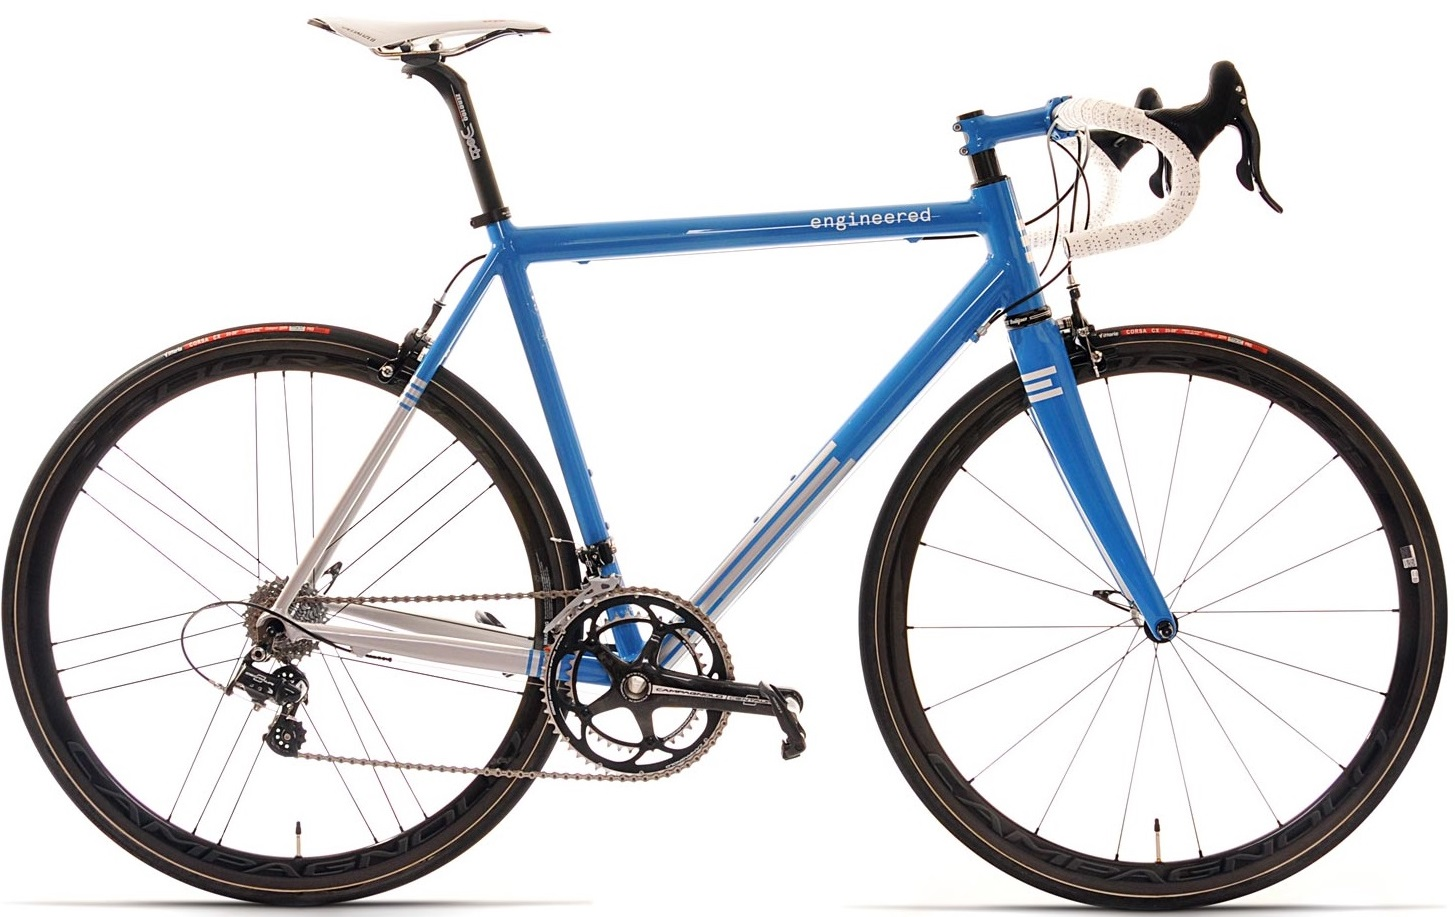 Engineered Donder light blue campy 2015neuroticarnutzEngineered Donder light blue campy 2015De Rosa scandium silver grey dura ace 2015